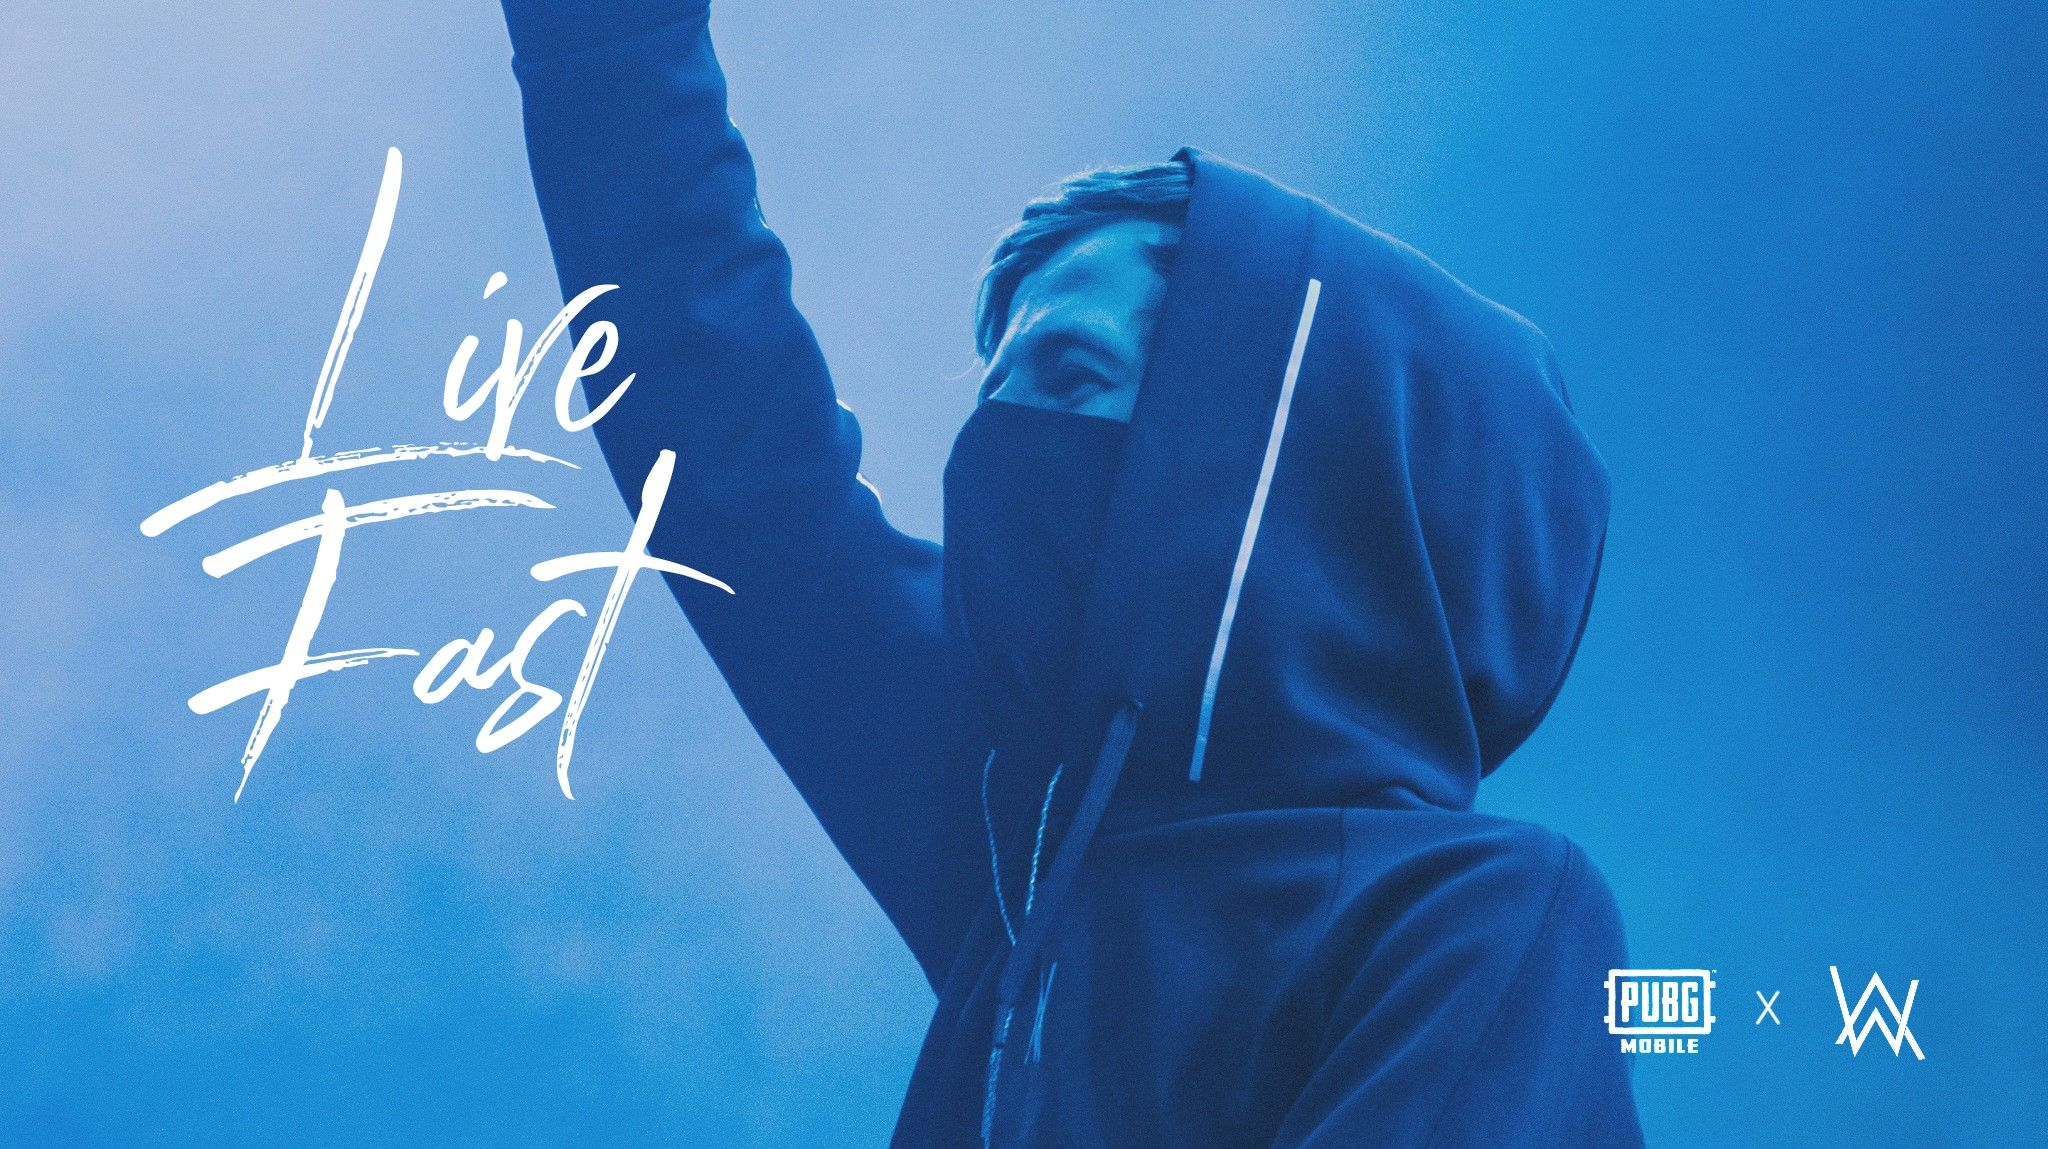 Check Live Fast By Alan Walker Collaborated With Pubg Mobile